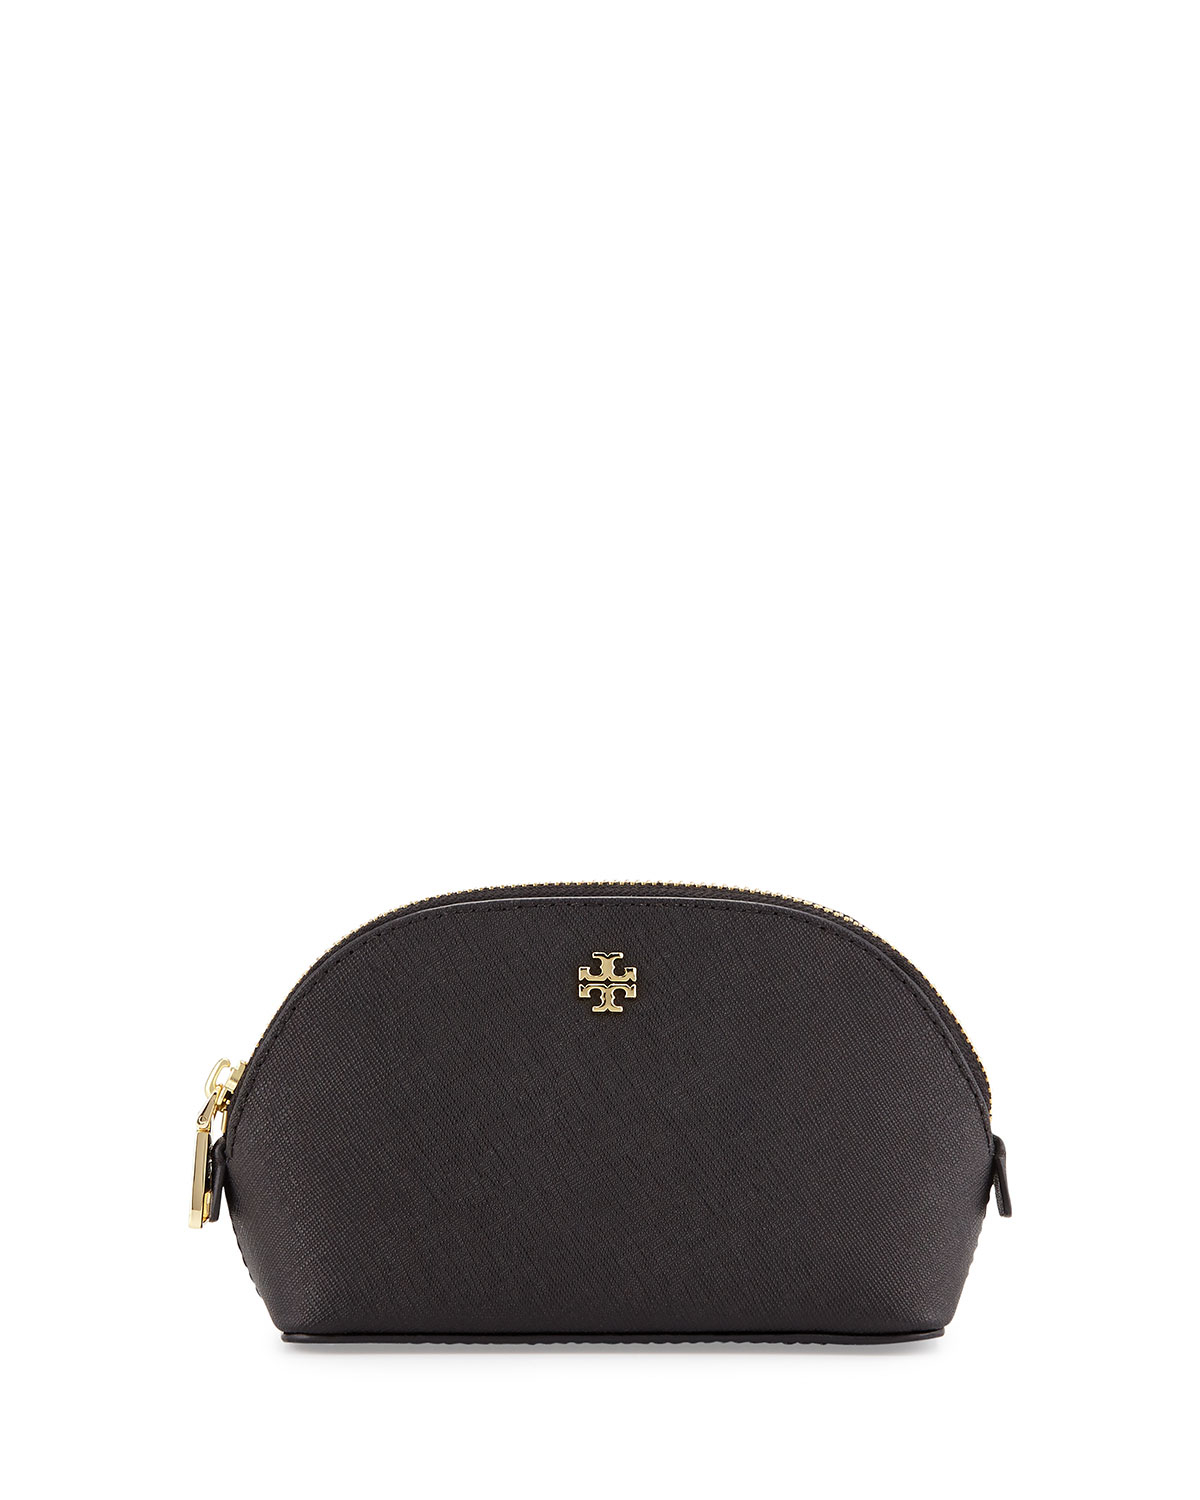 Tory burch York Small Saffiano Makeup Bag in Black : Lyst